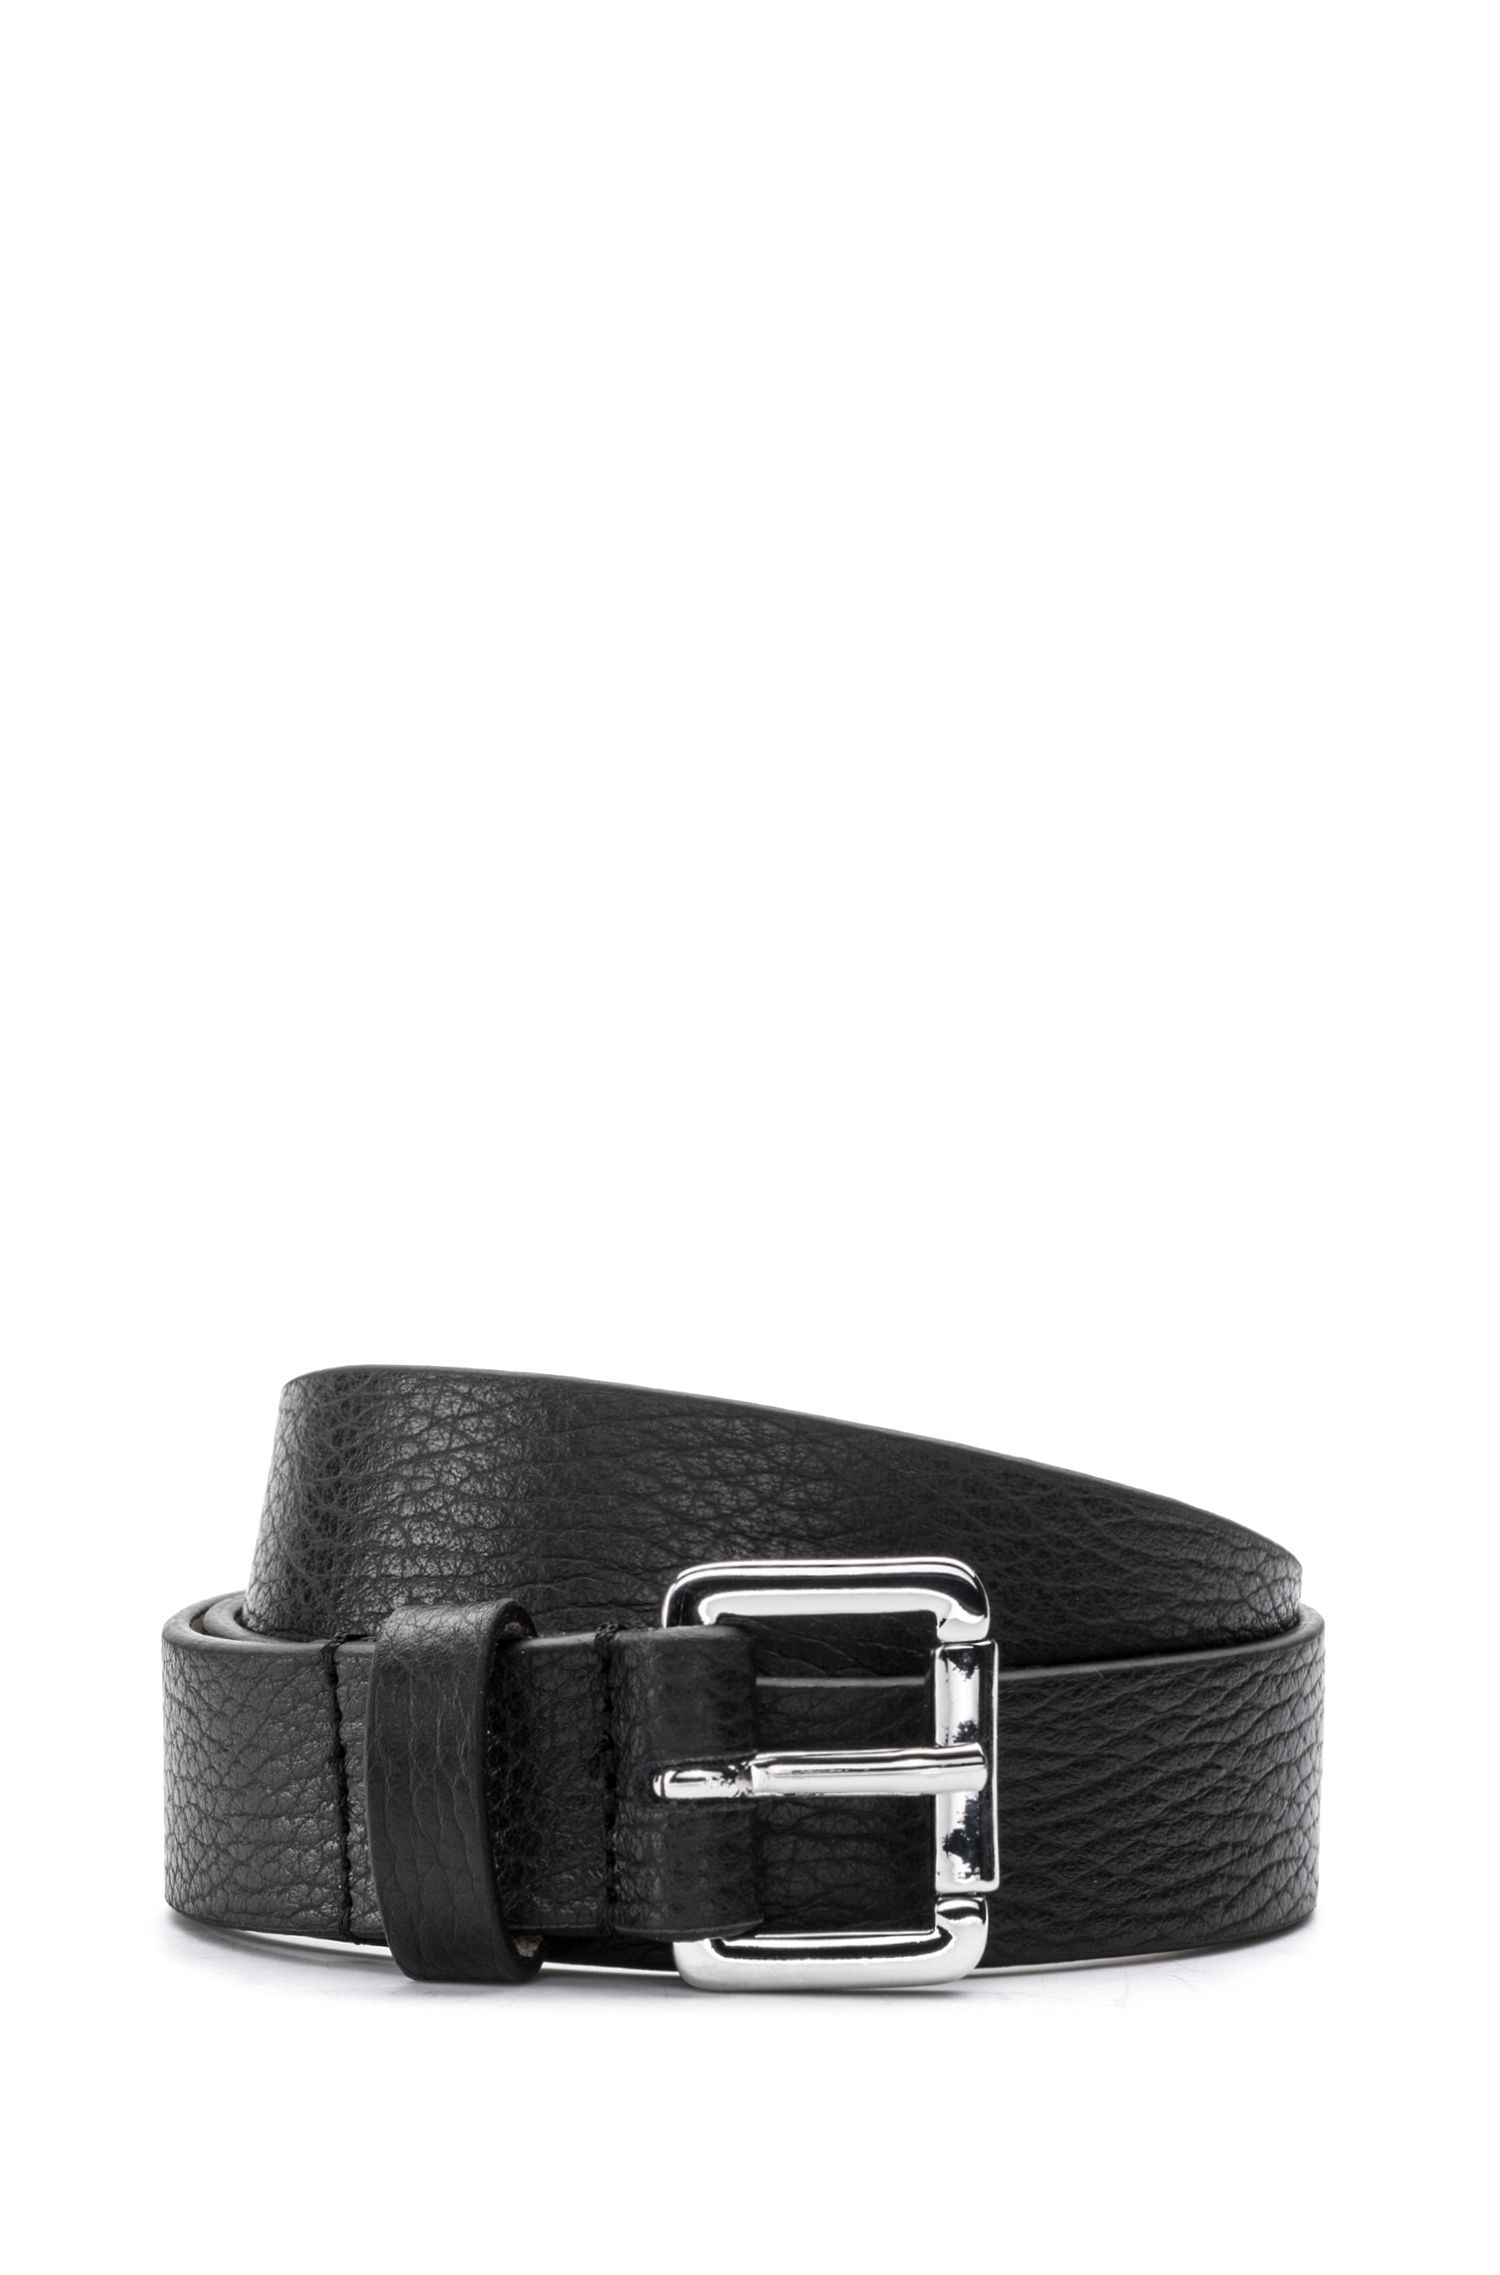 Italian-leather belt with polished buckle